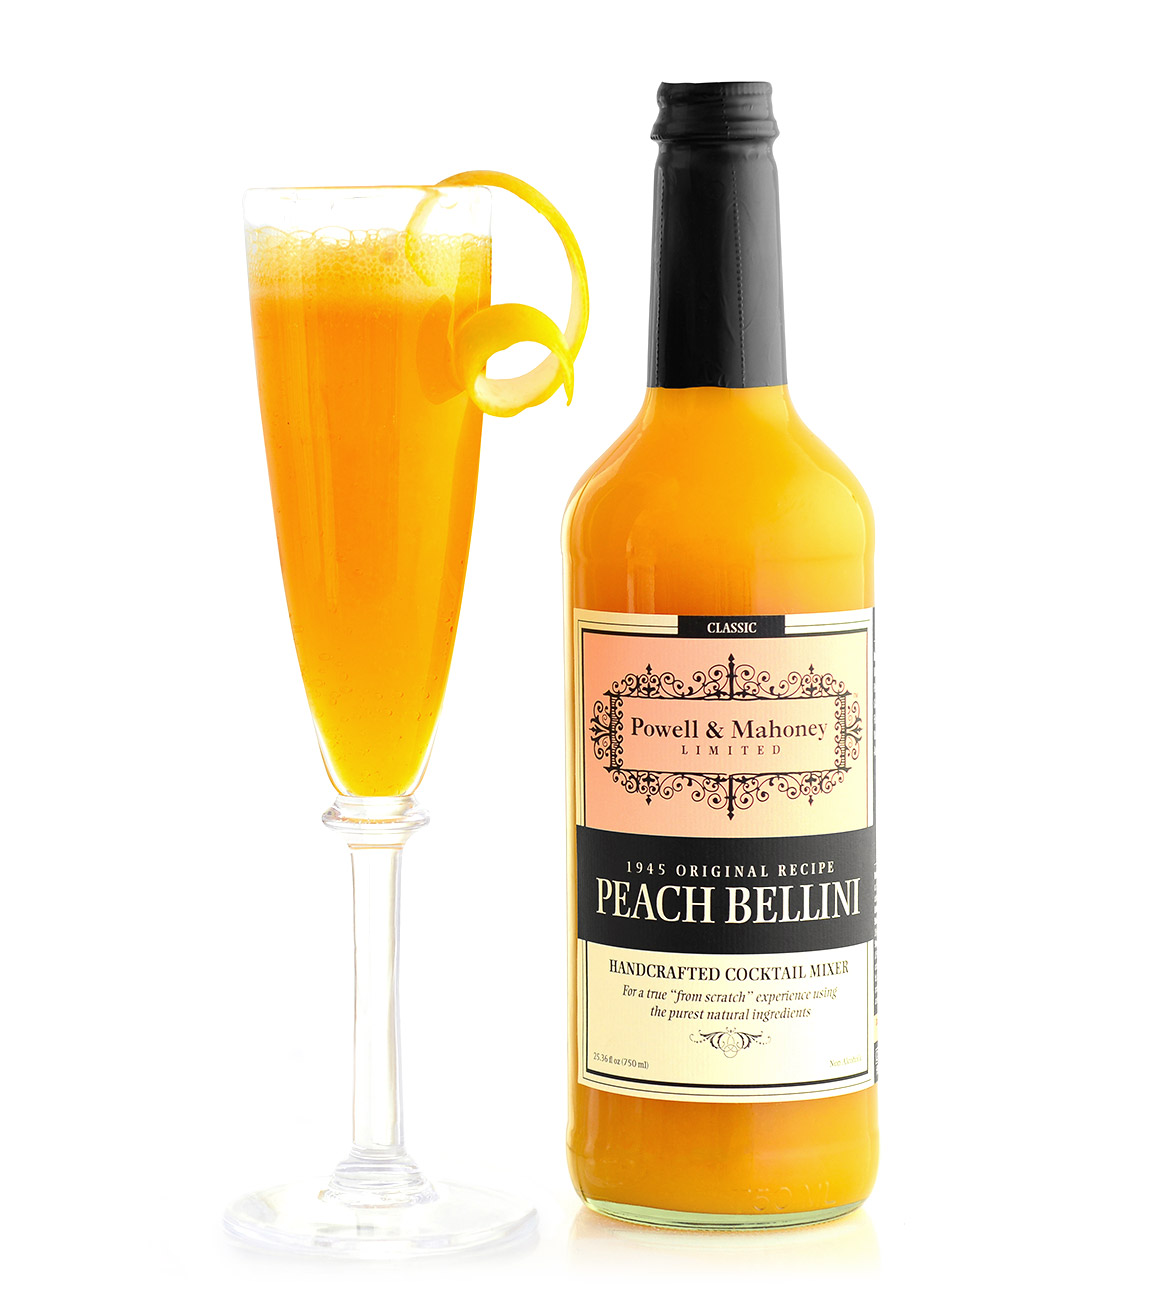 Peach Bellini - Powell & Mahoney Craft Cocktail Mixers